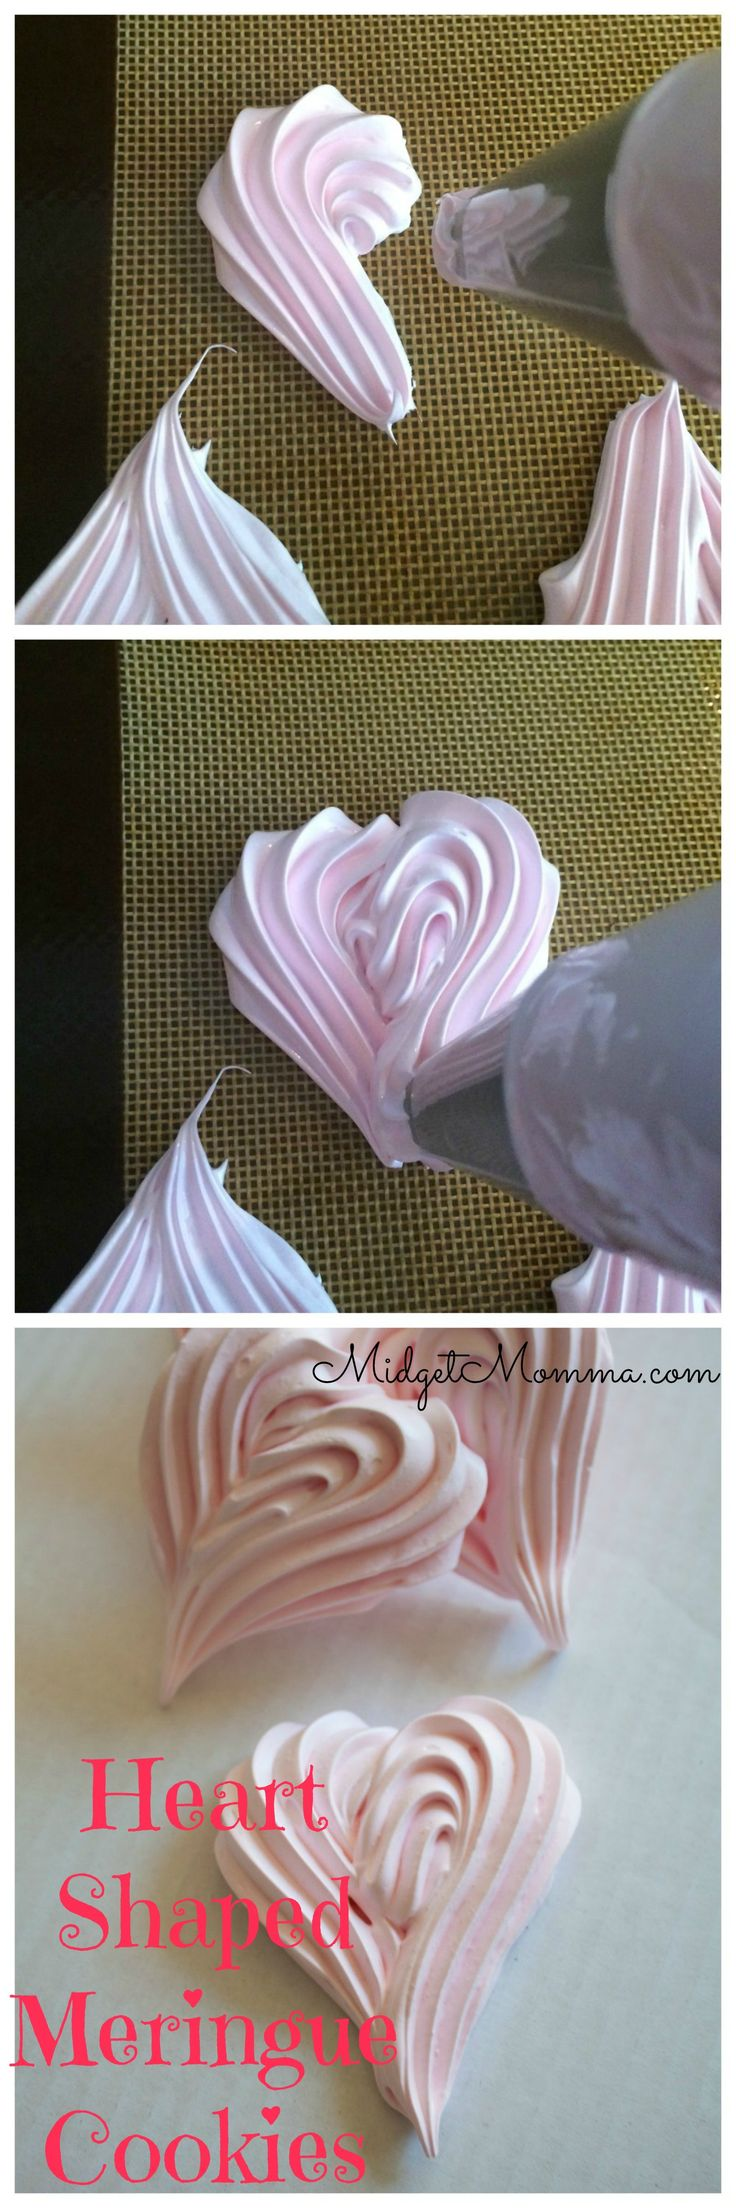 These Meringue Cookies are great for Valentines Day since they are shaped like…